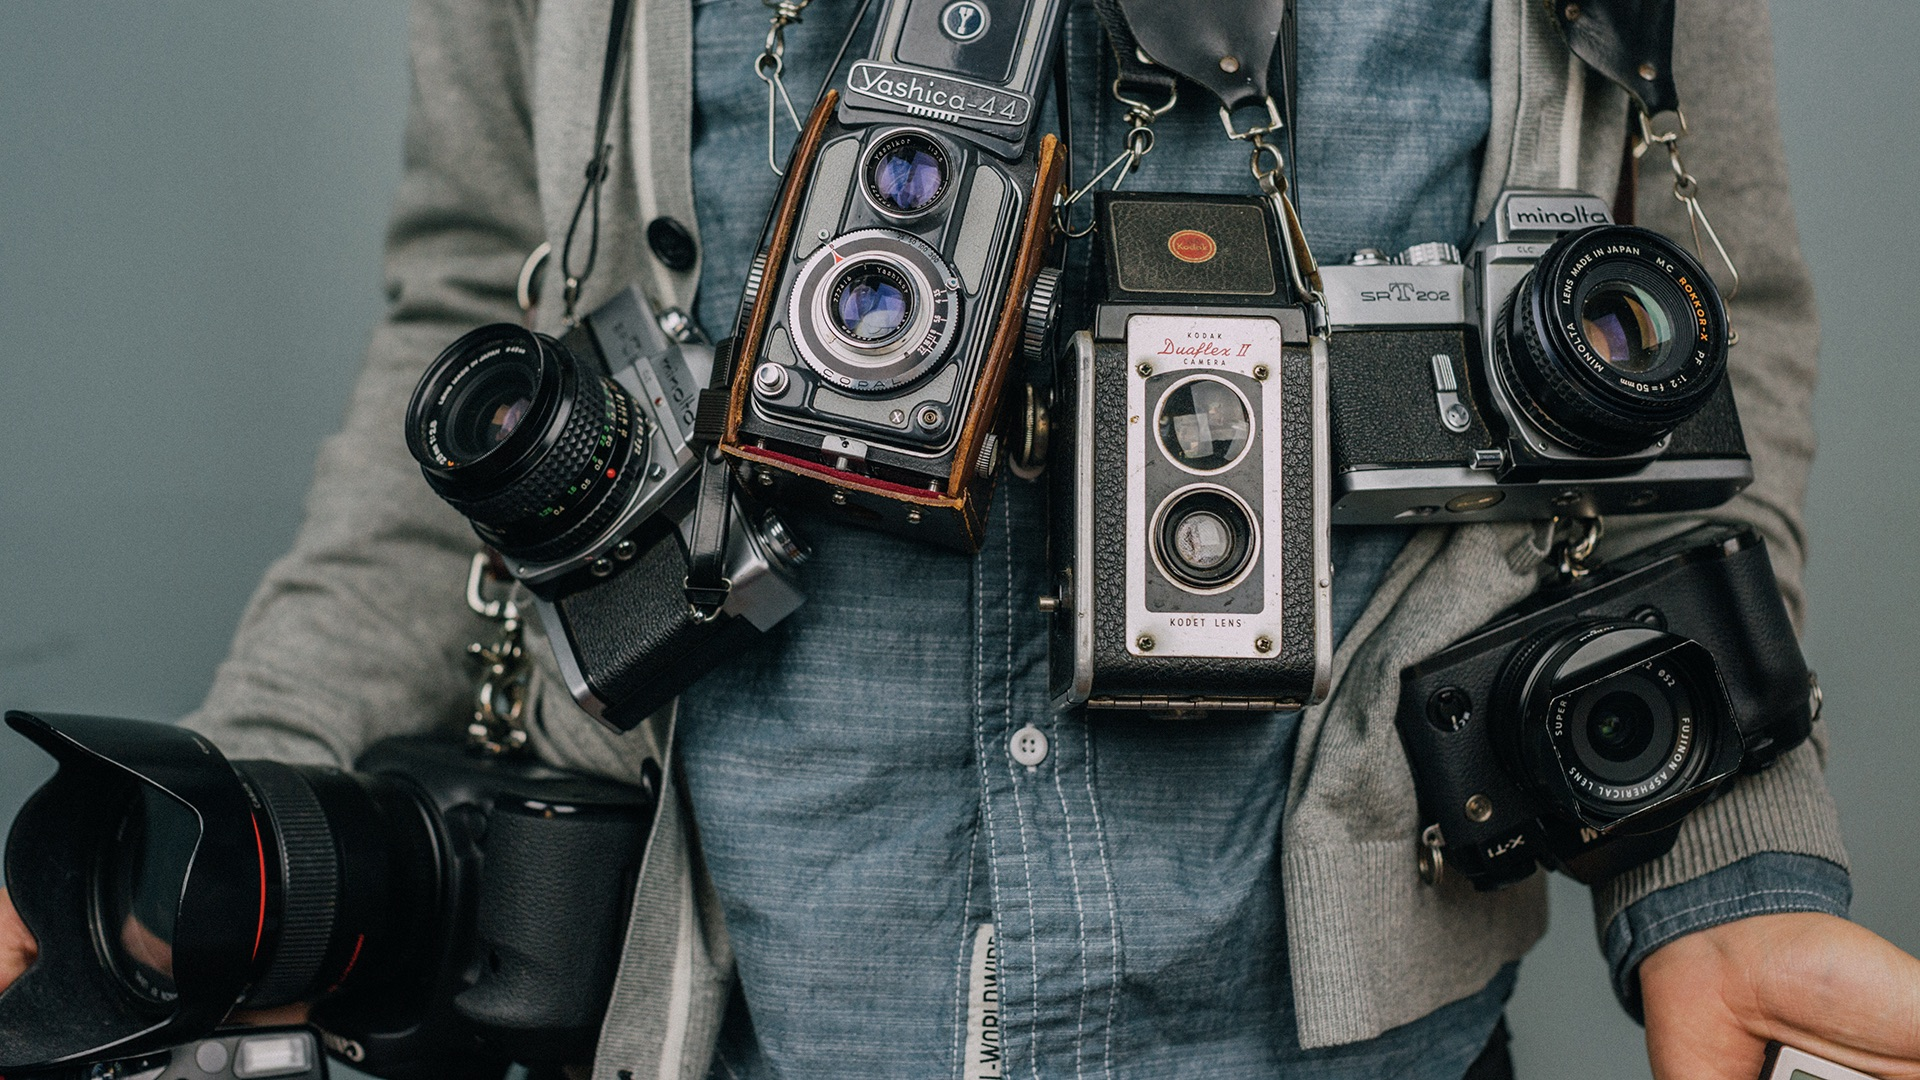 Where's the best place to buy a camera?